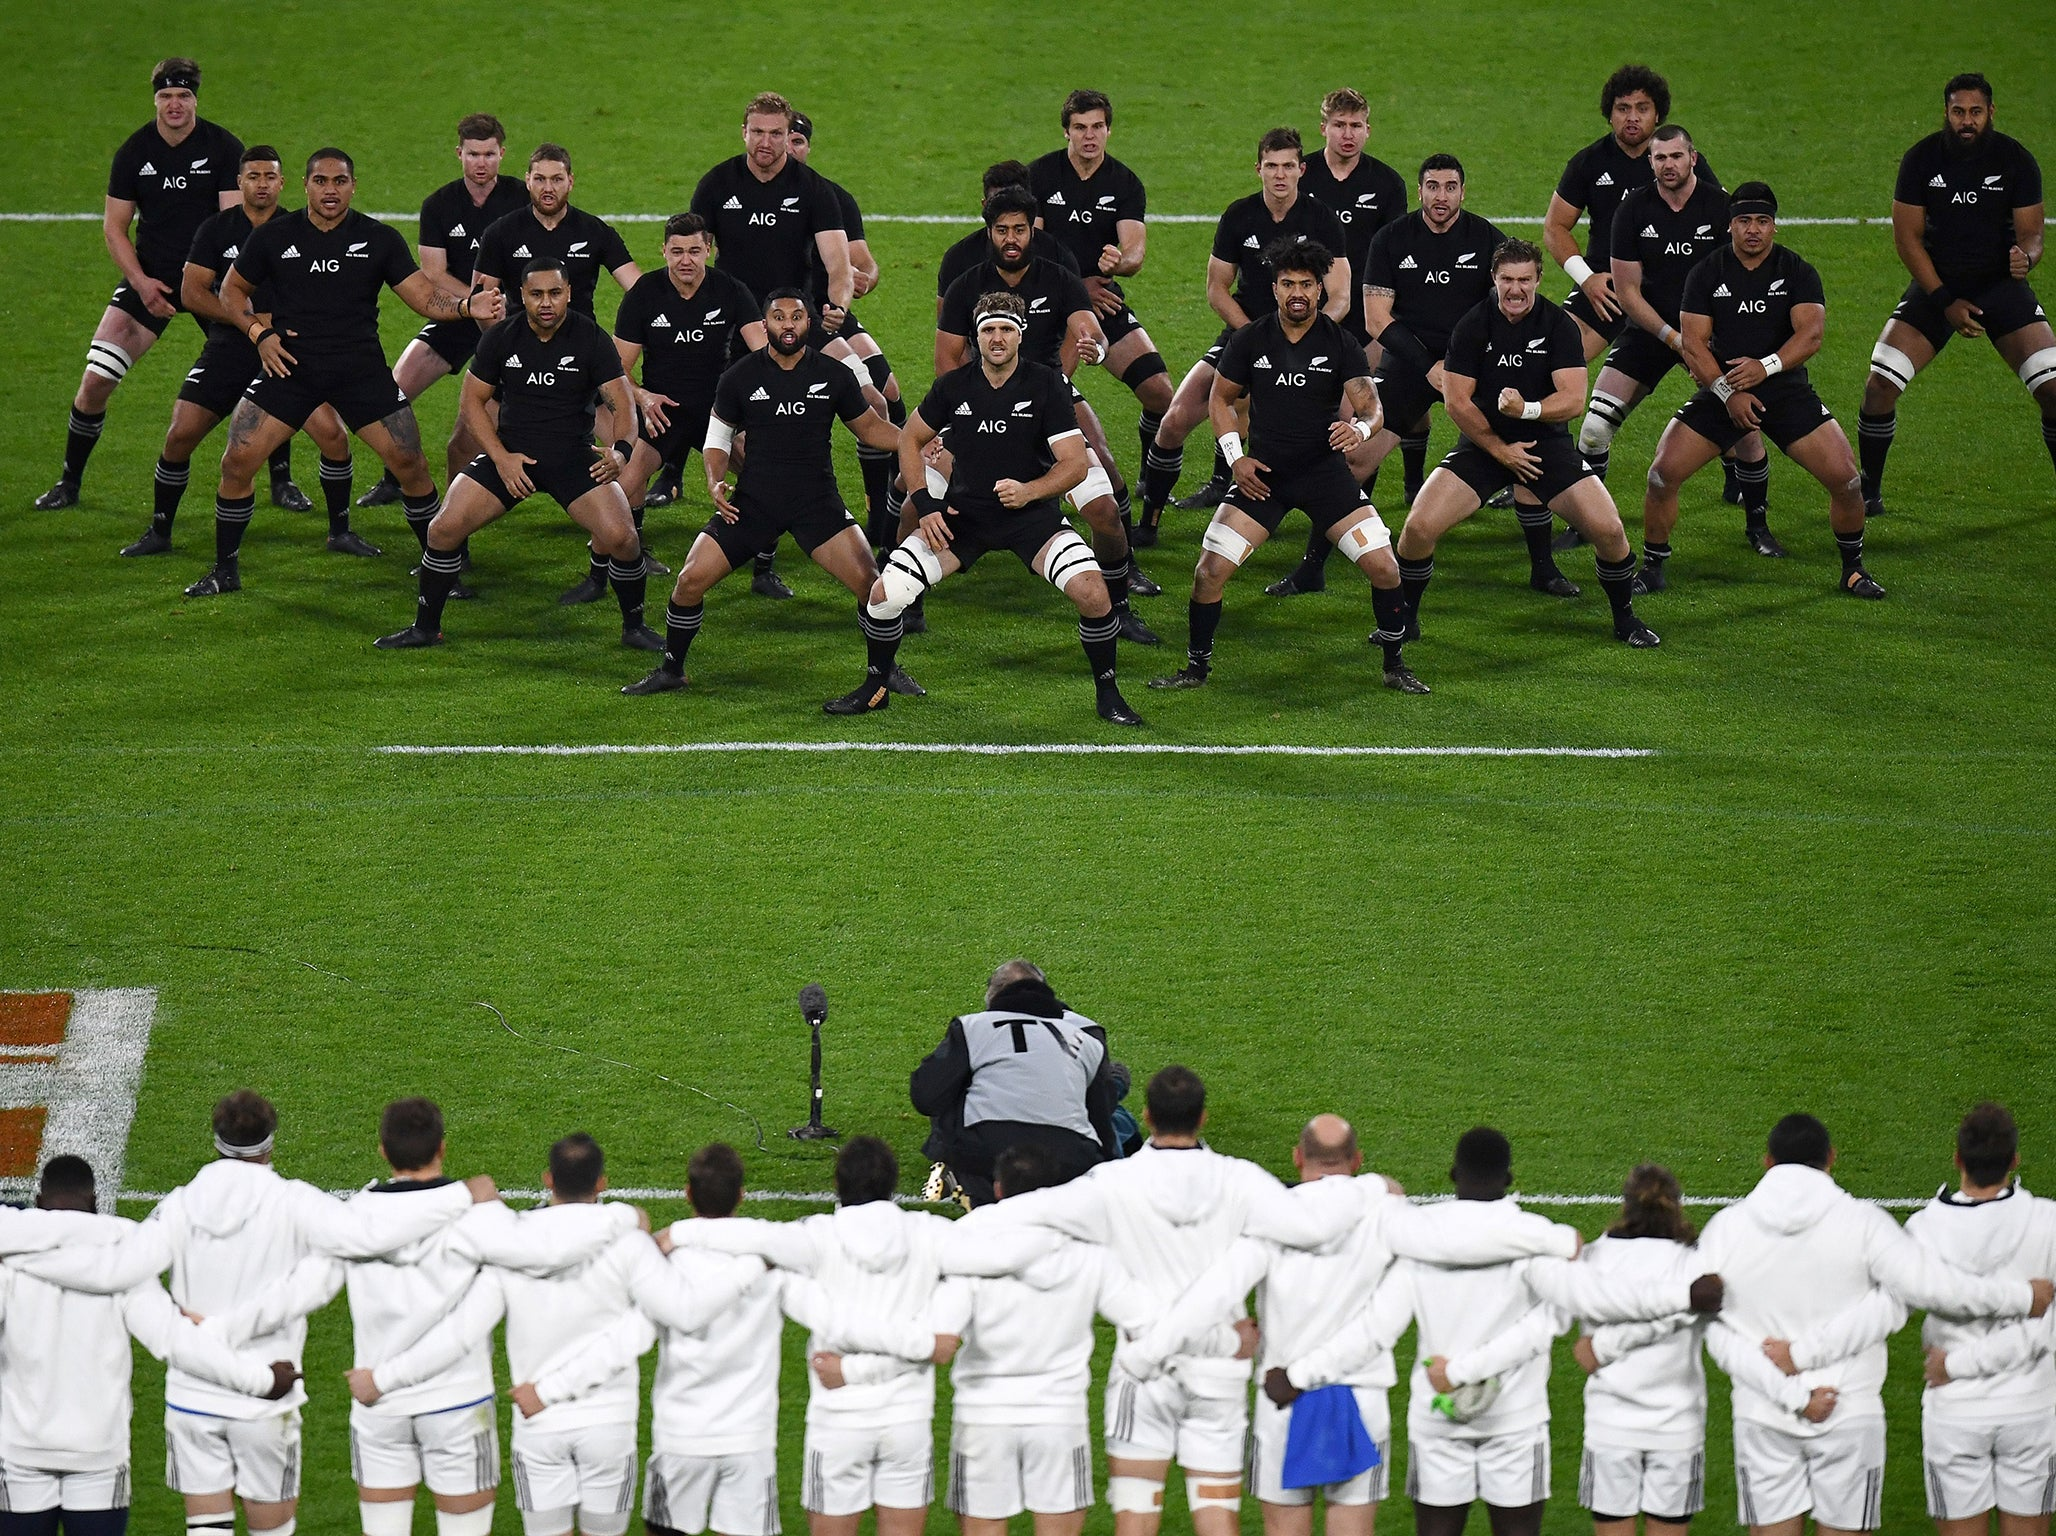 Autumn Internationals 2018: Who are England, Ireland, Scotland and Wales playing, what TV channel, when are they, kick-off times